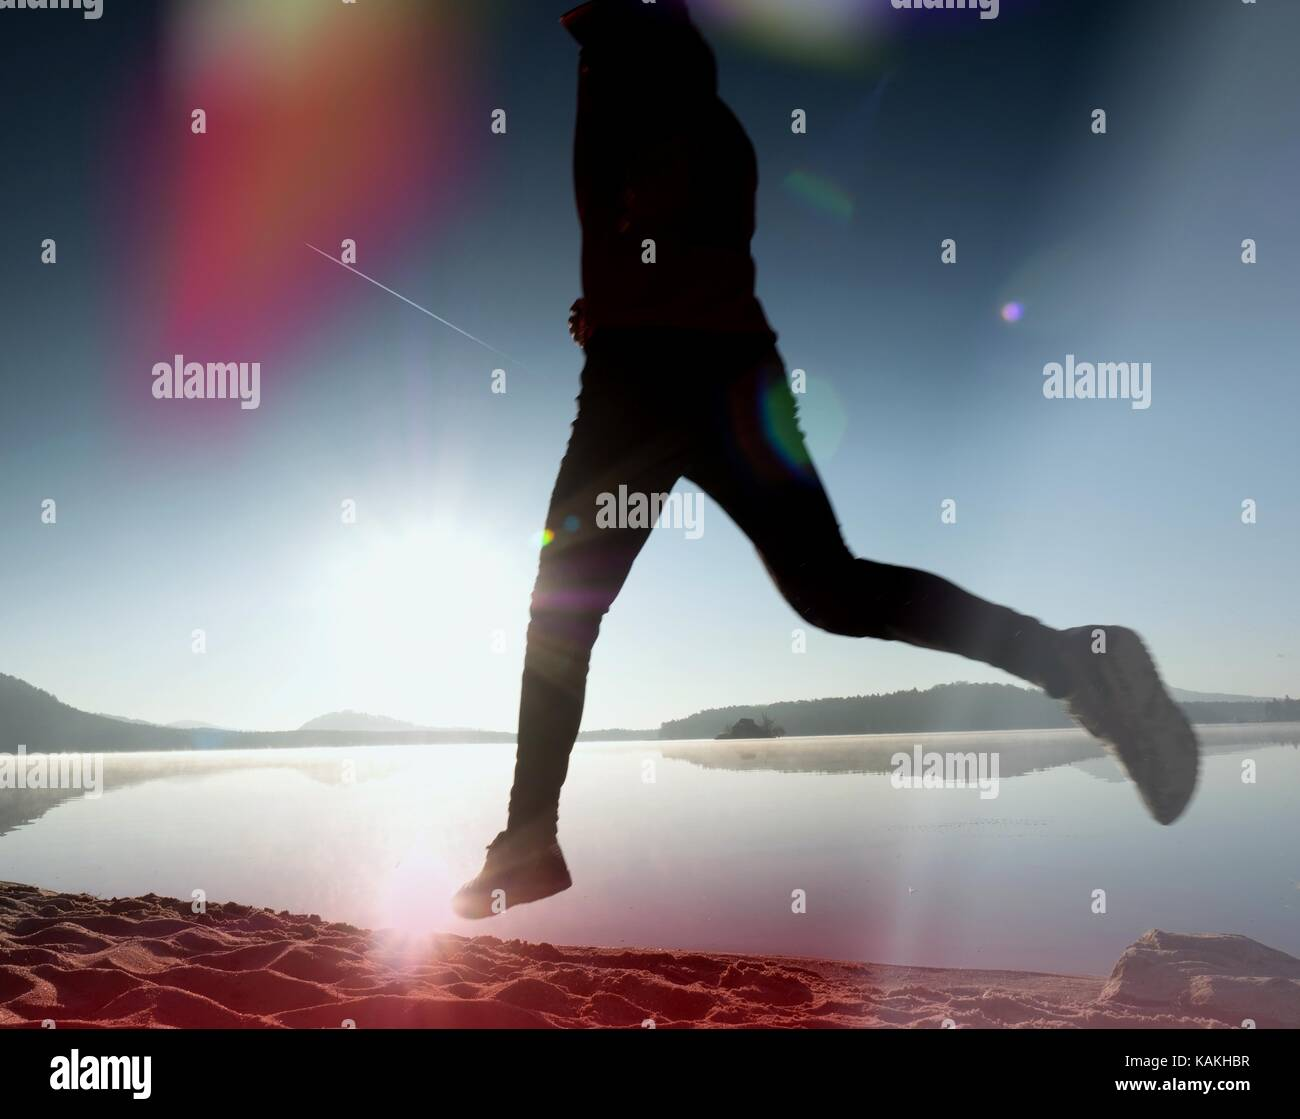 Leakage of light in the lens. Damaged photo effect. Handsome slim  man running on the beach. Exercising  silhouette - Stock Image